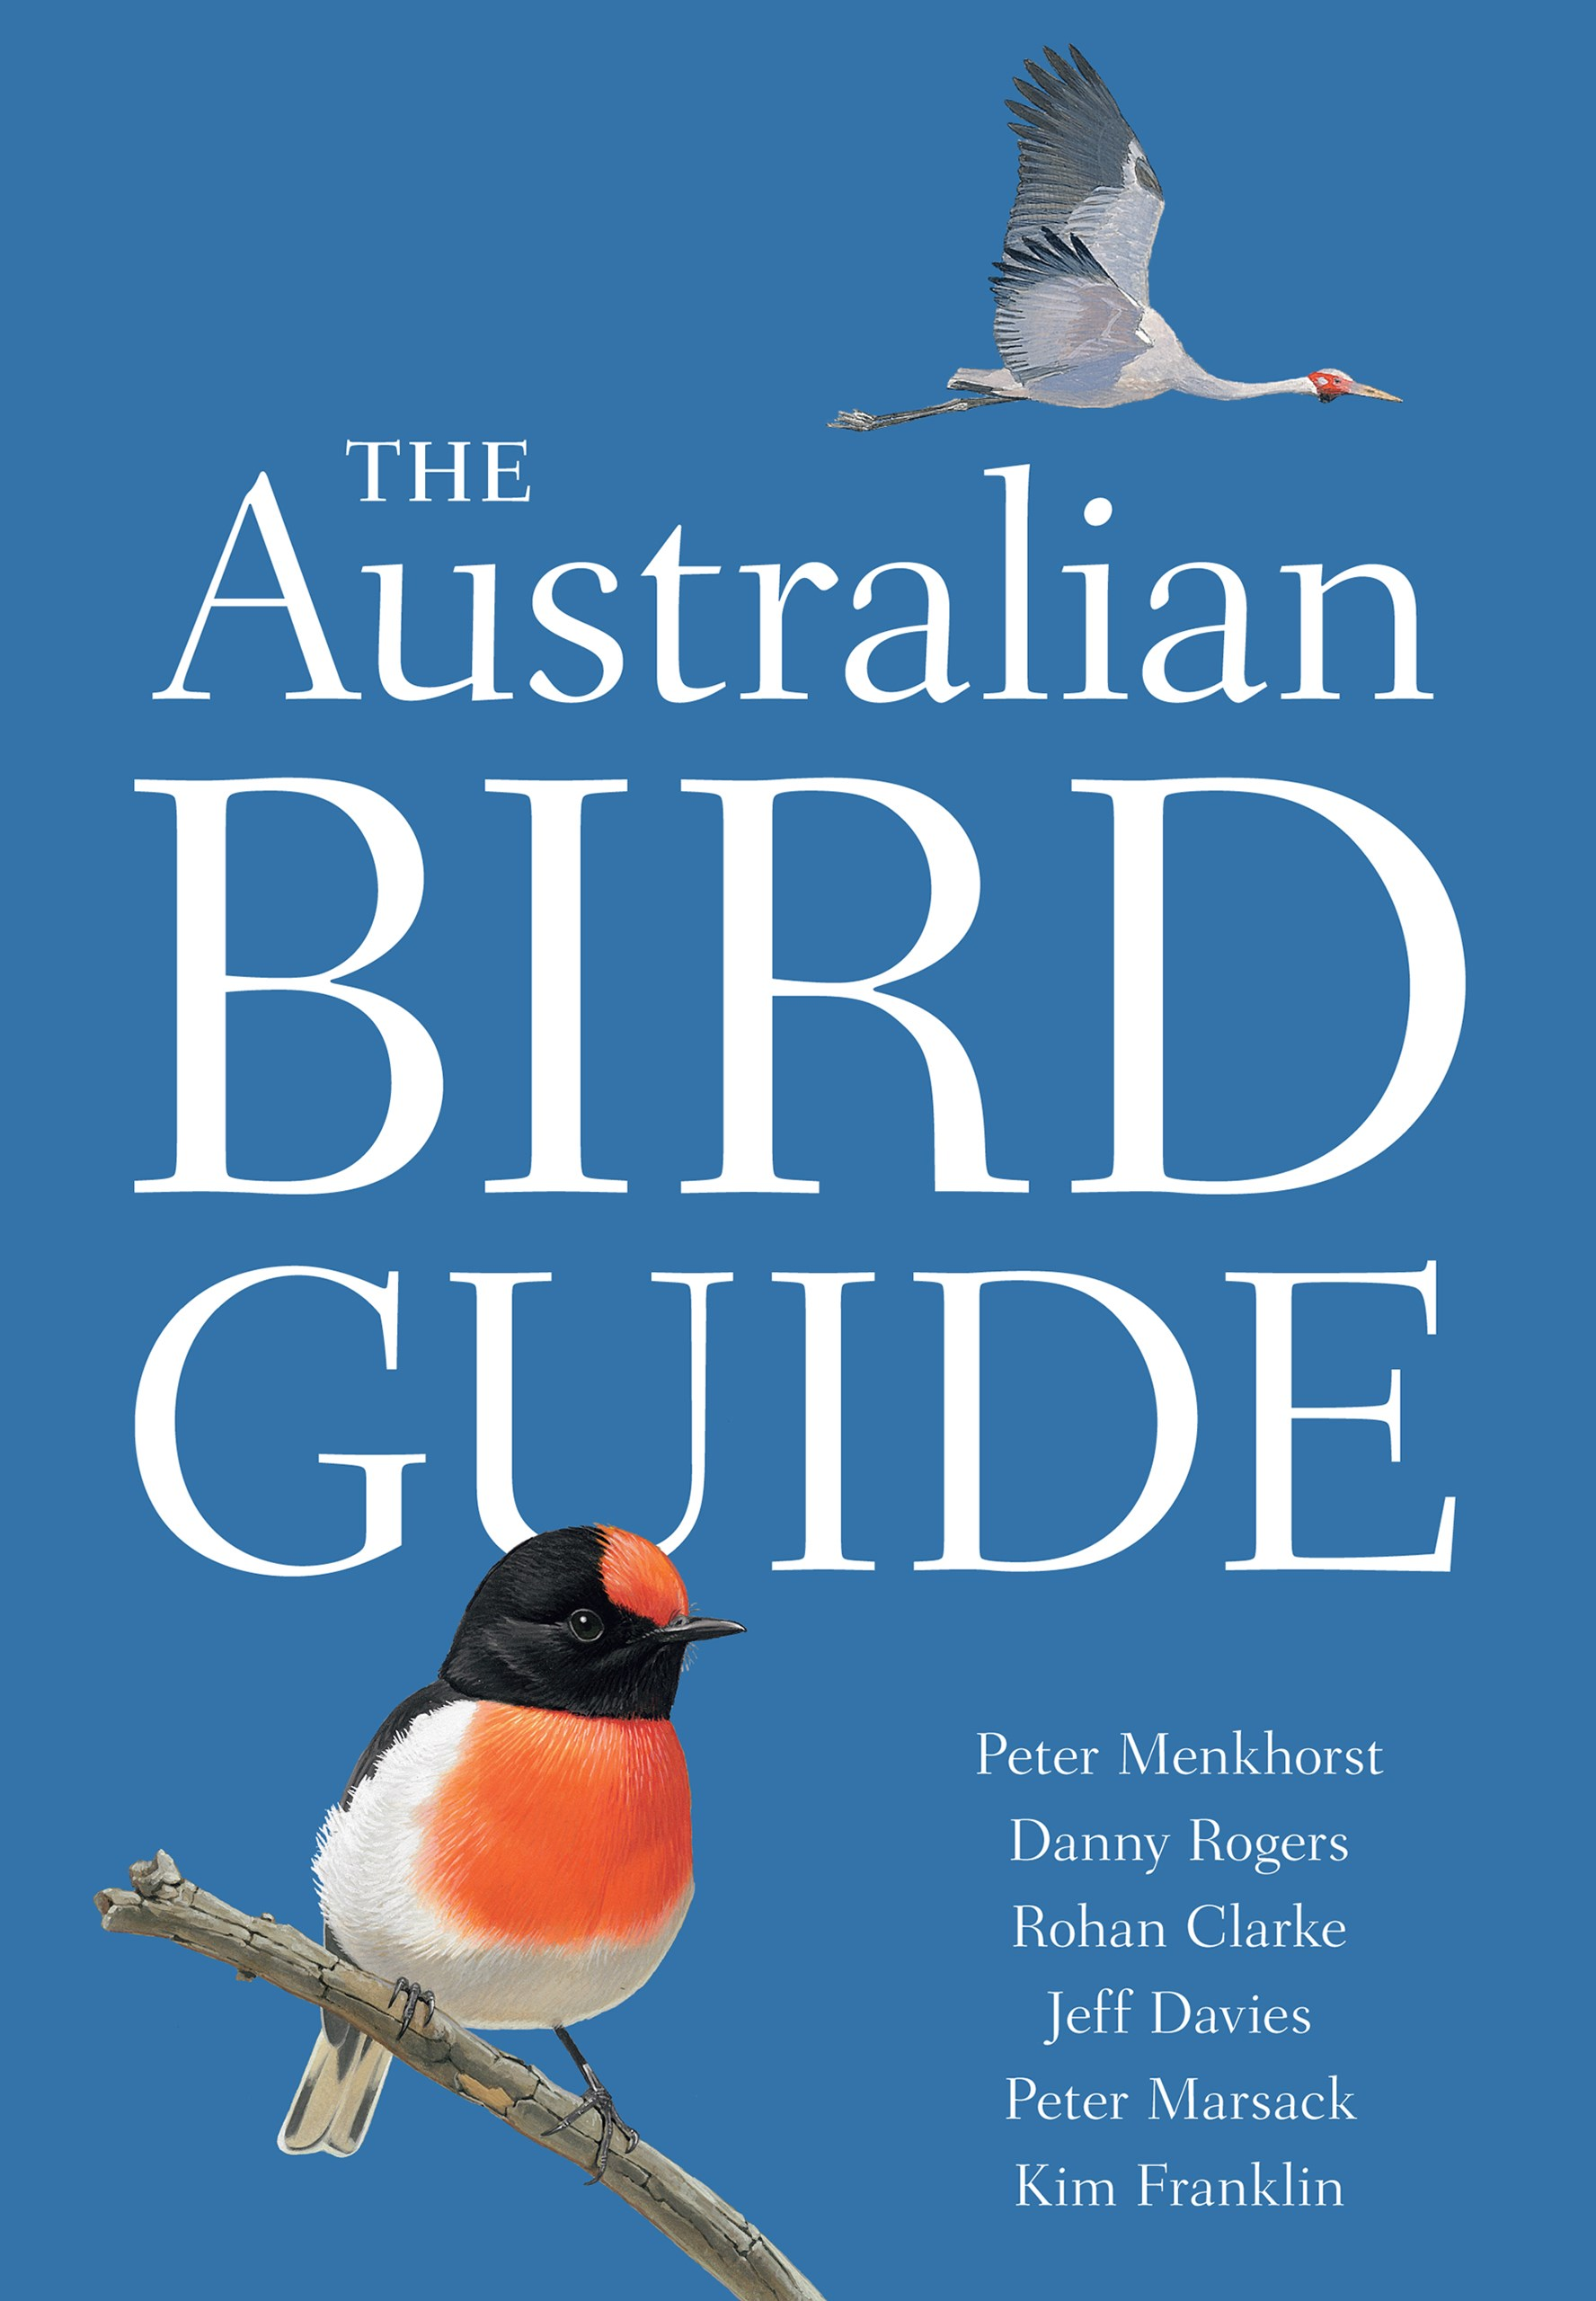 The Australian Bird Guide